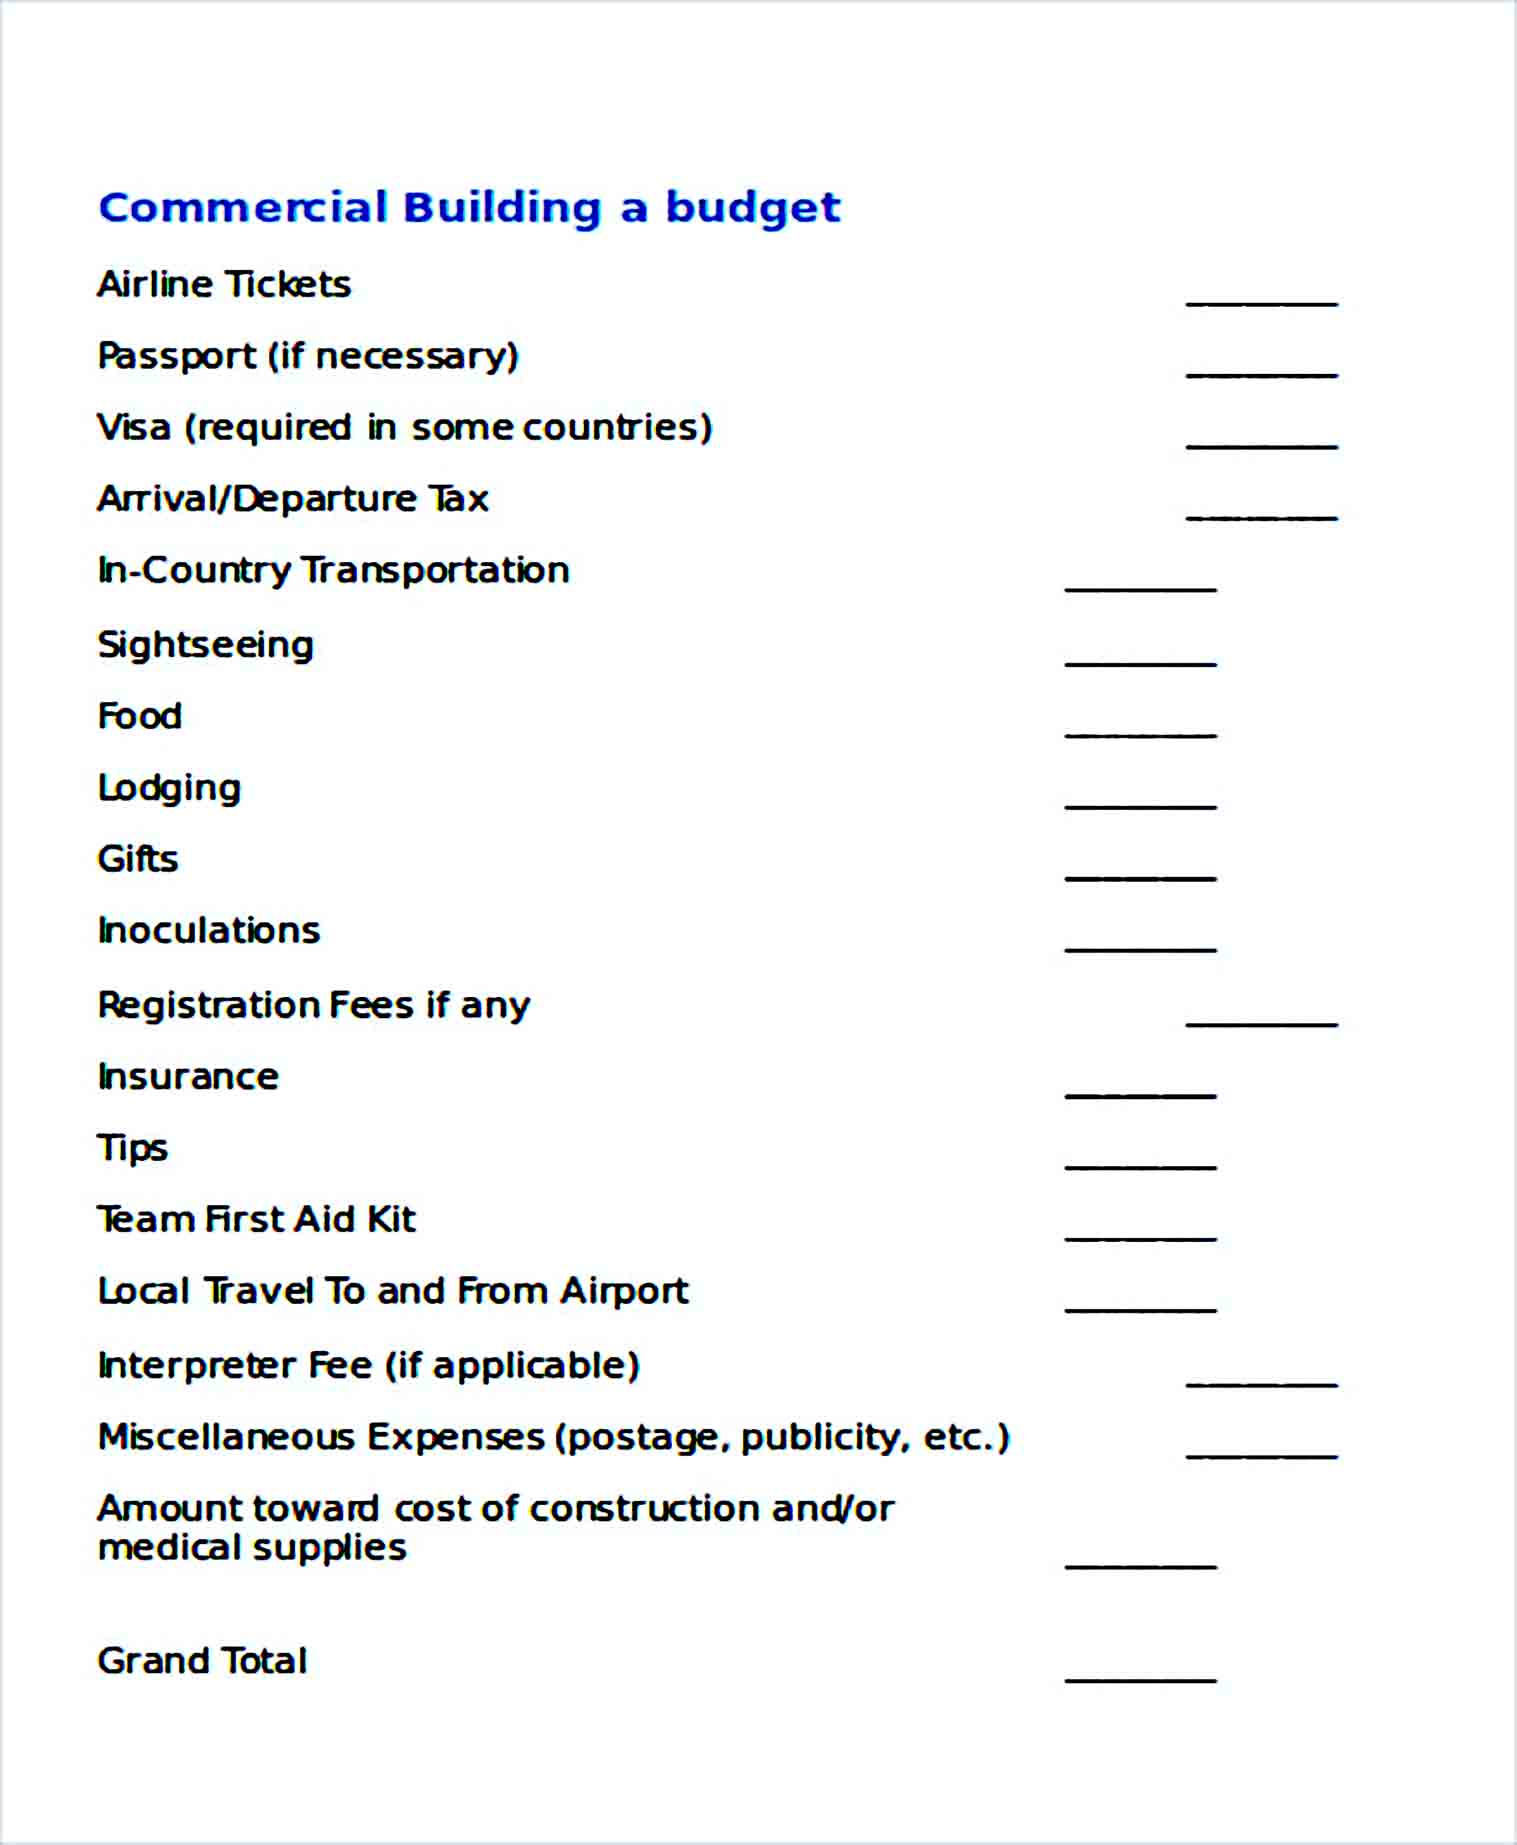 Sample Commercial Building Budget